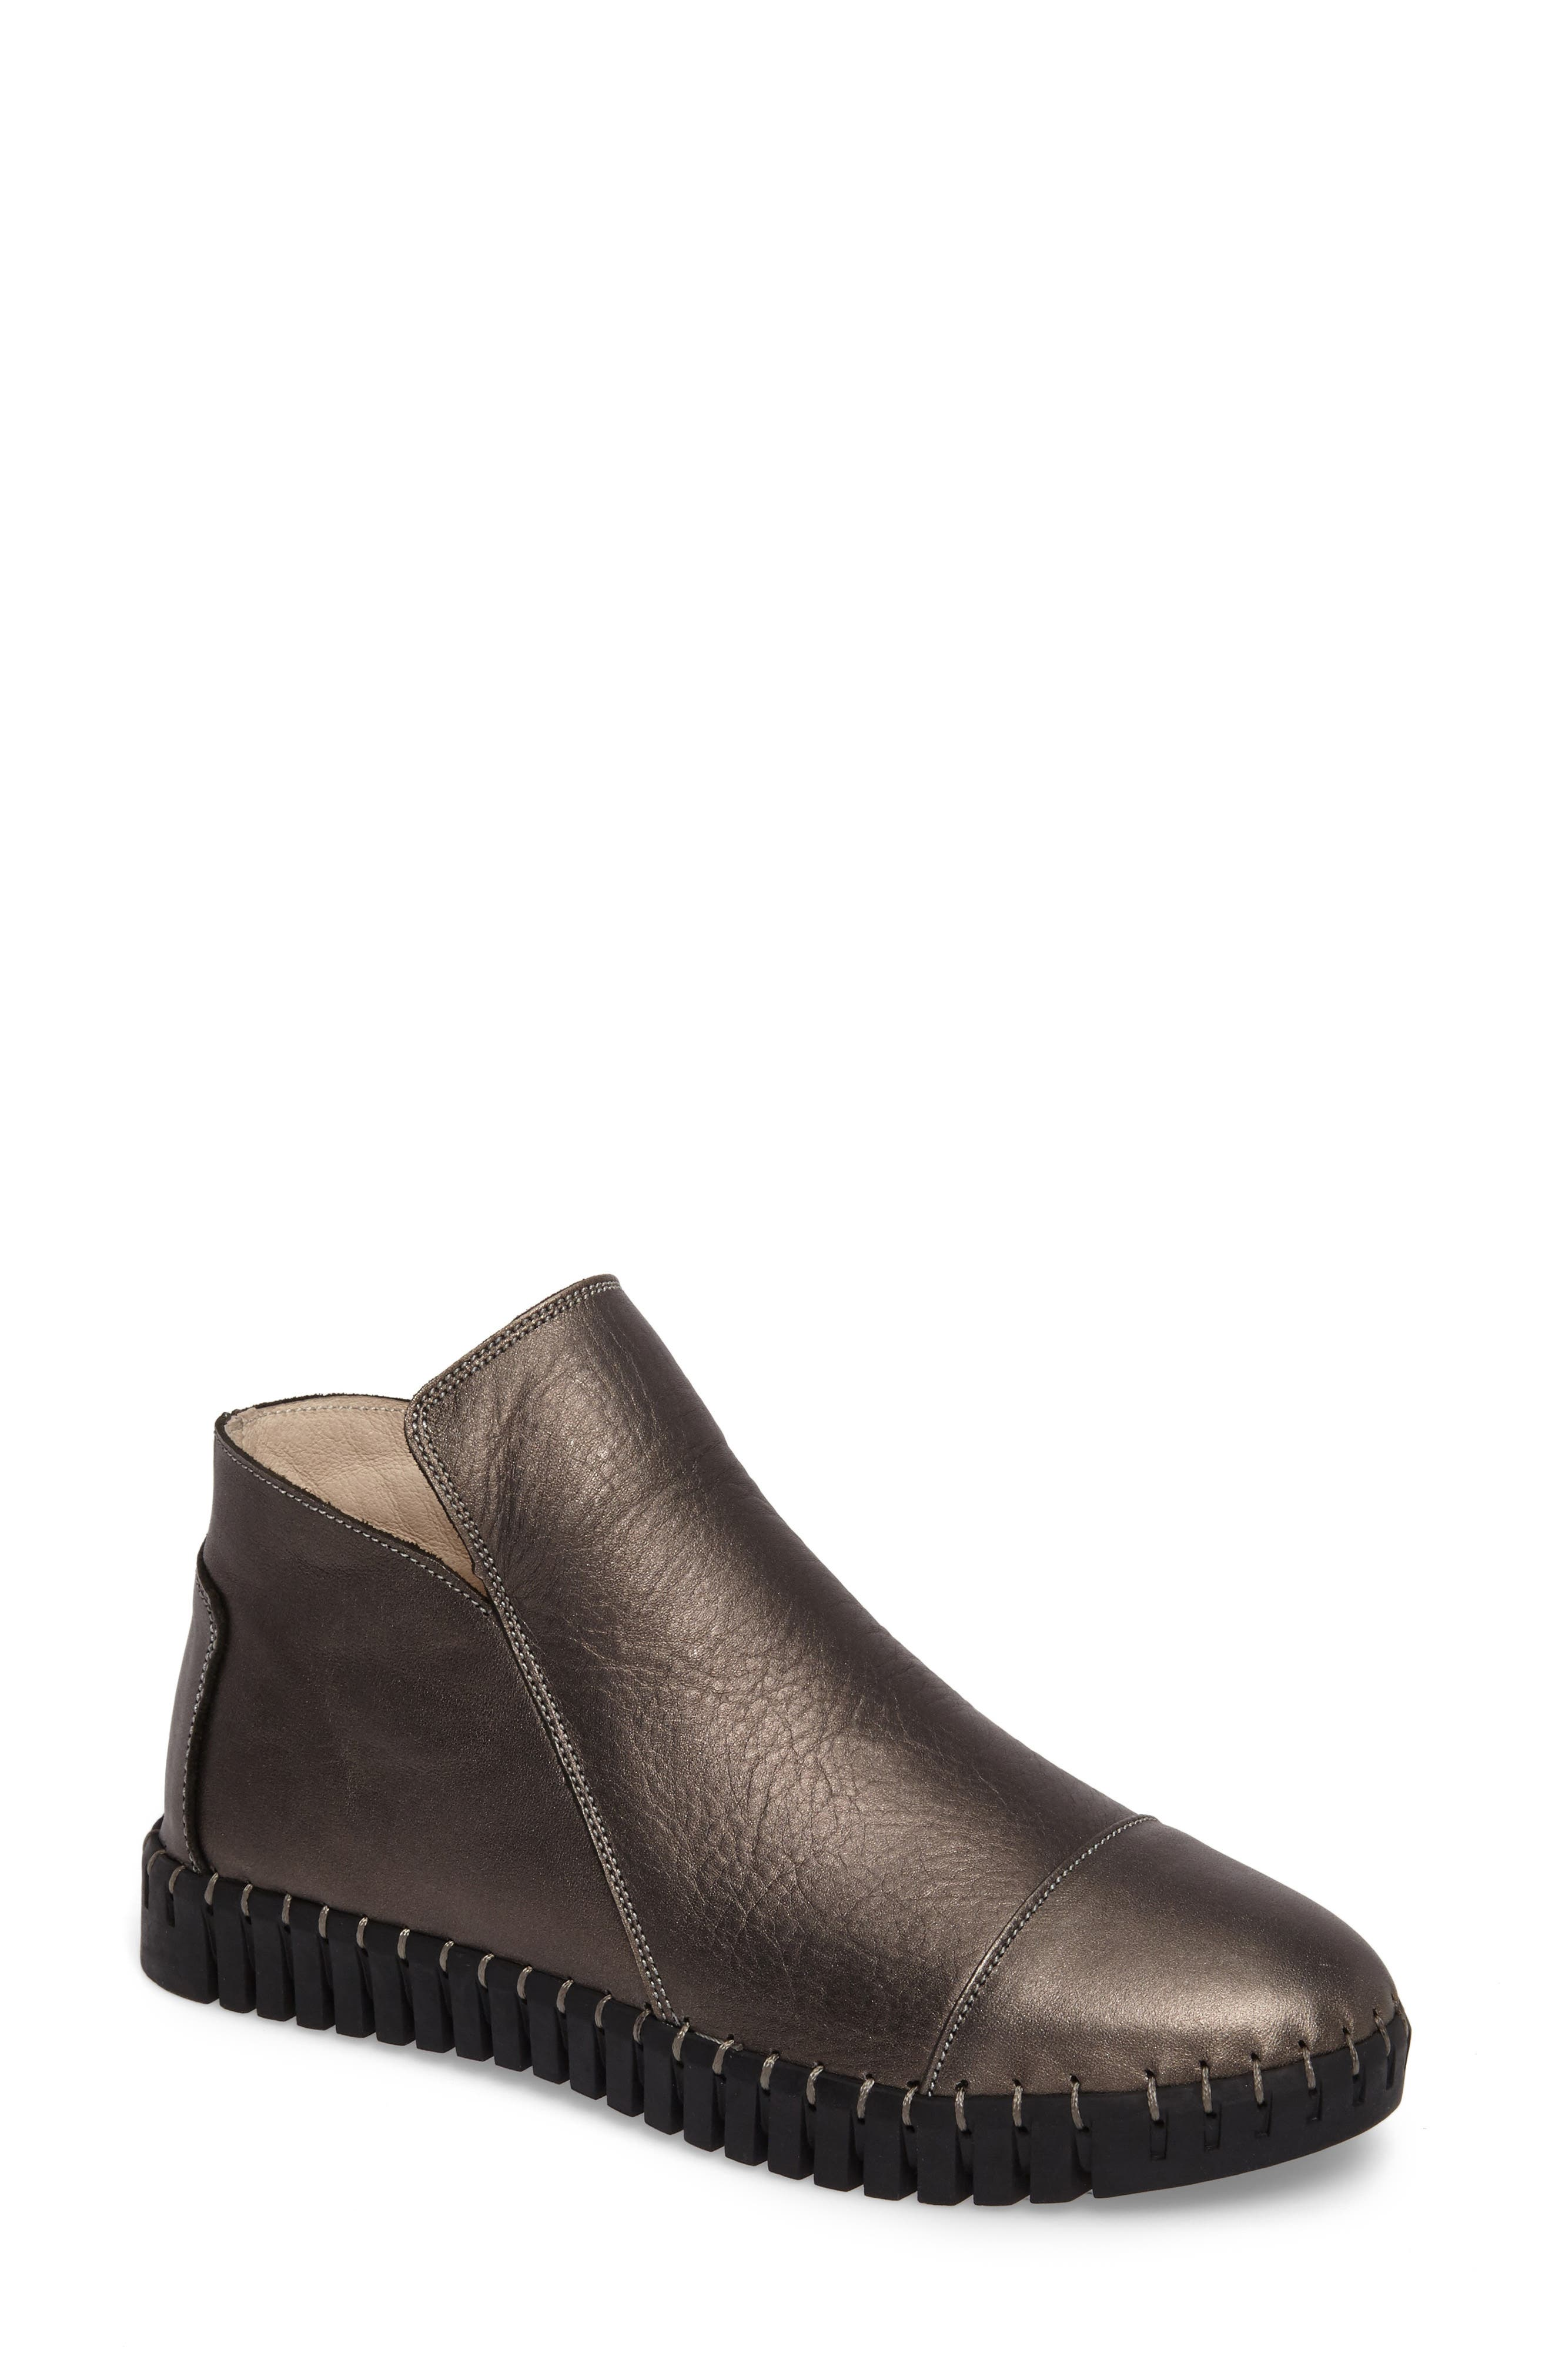 TW80 Bootie, Main, color, GUNMETAL LEATHER